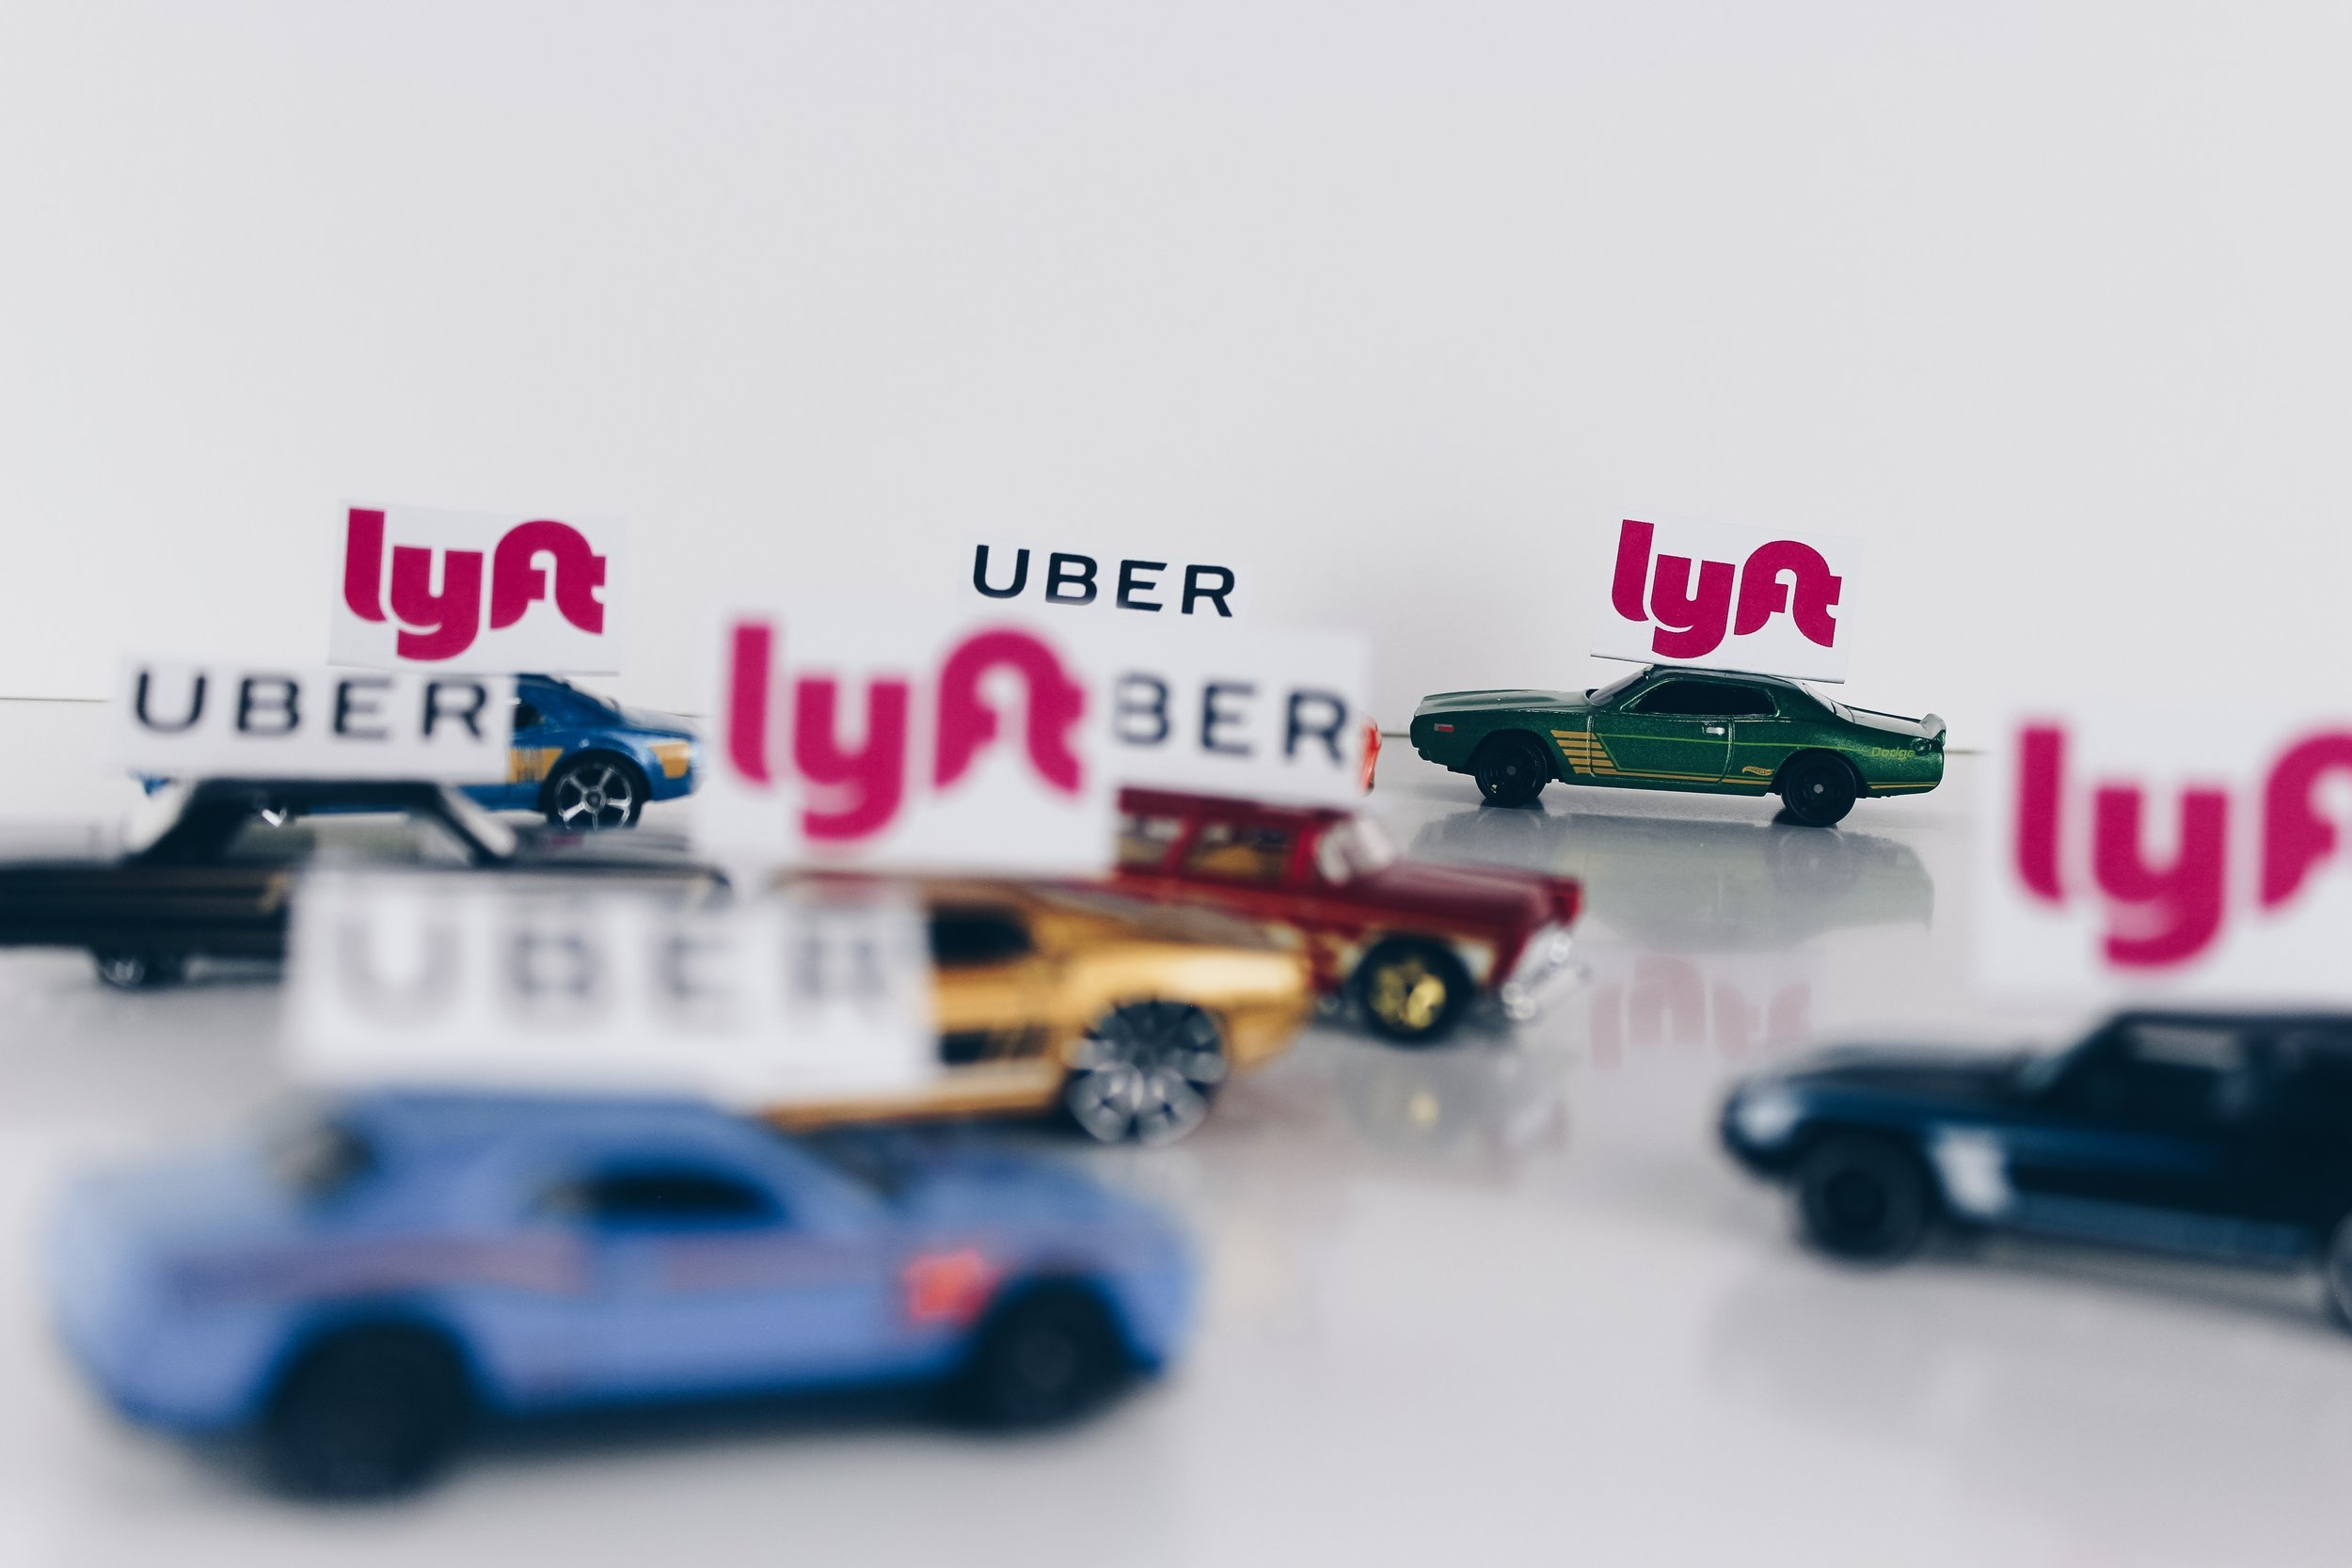 Car sharing will influence the car hire ecosystem massively